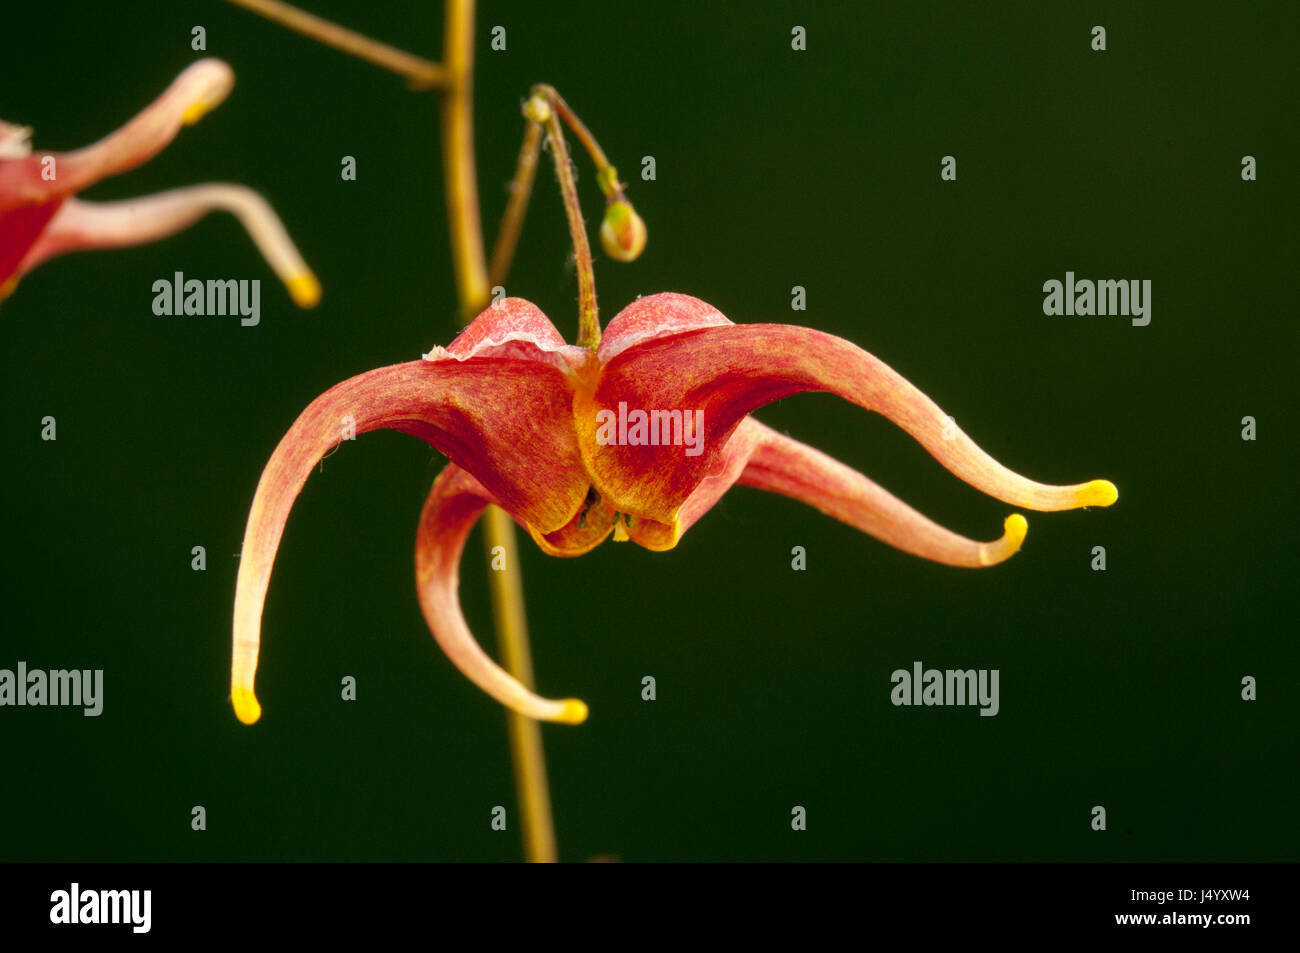 Scientific Name Of Flower Stock Photos Scientific Name Of Flower